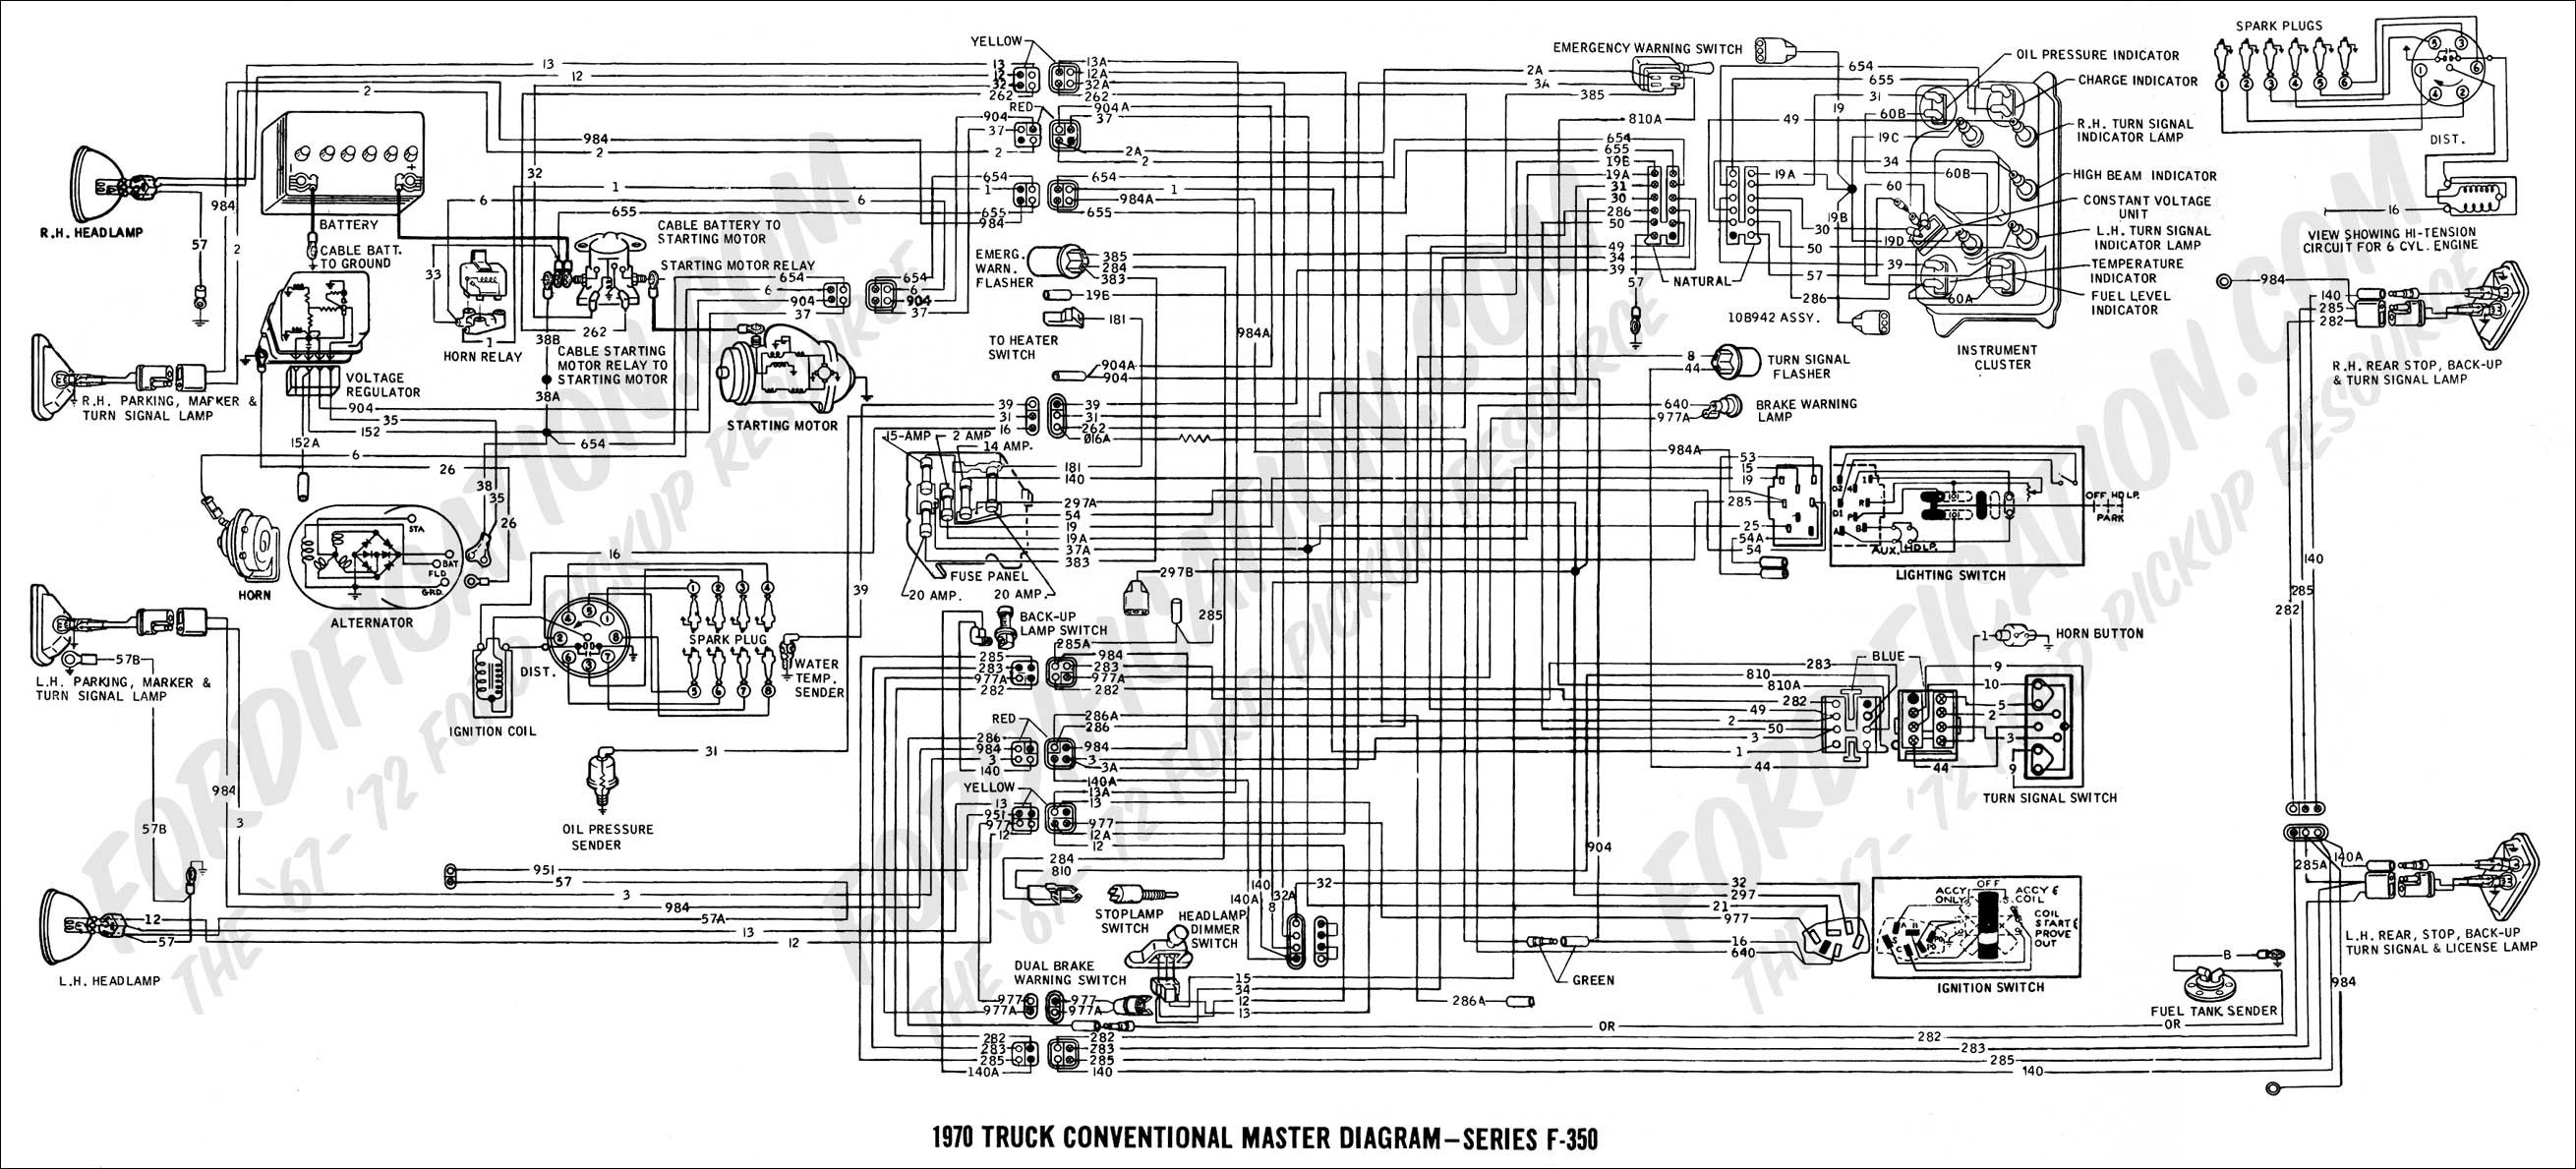 1986 ford F350 Wiring Diagram Inspirational Turn Signal Wiring Diagram Diagram Of 1986 ford F350 Wiring Diagram